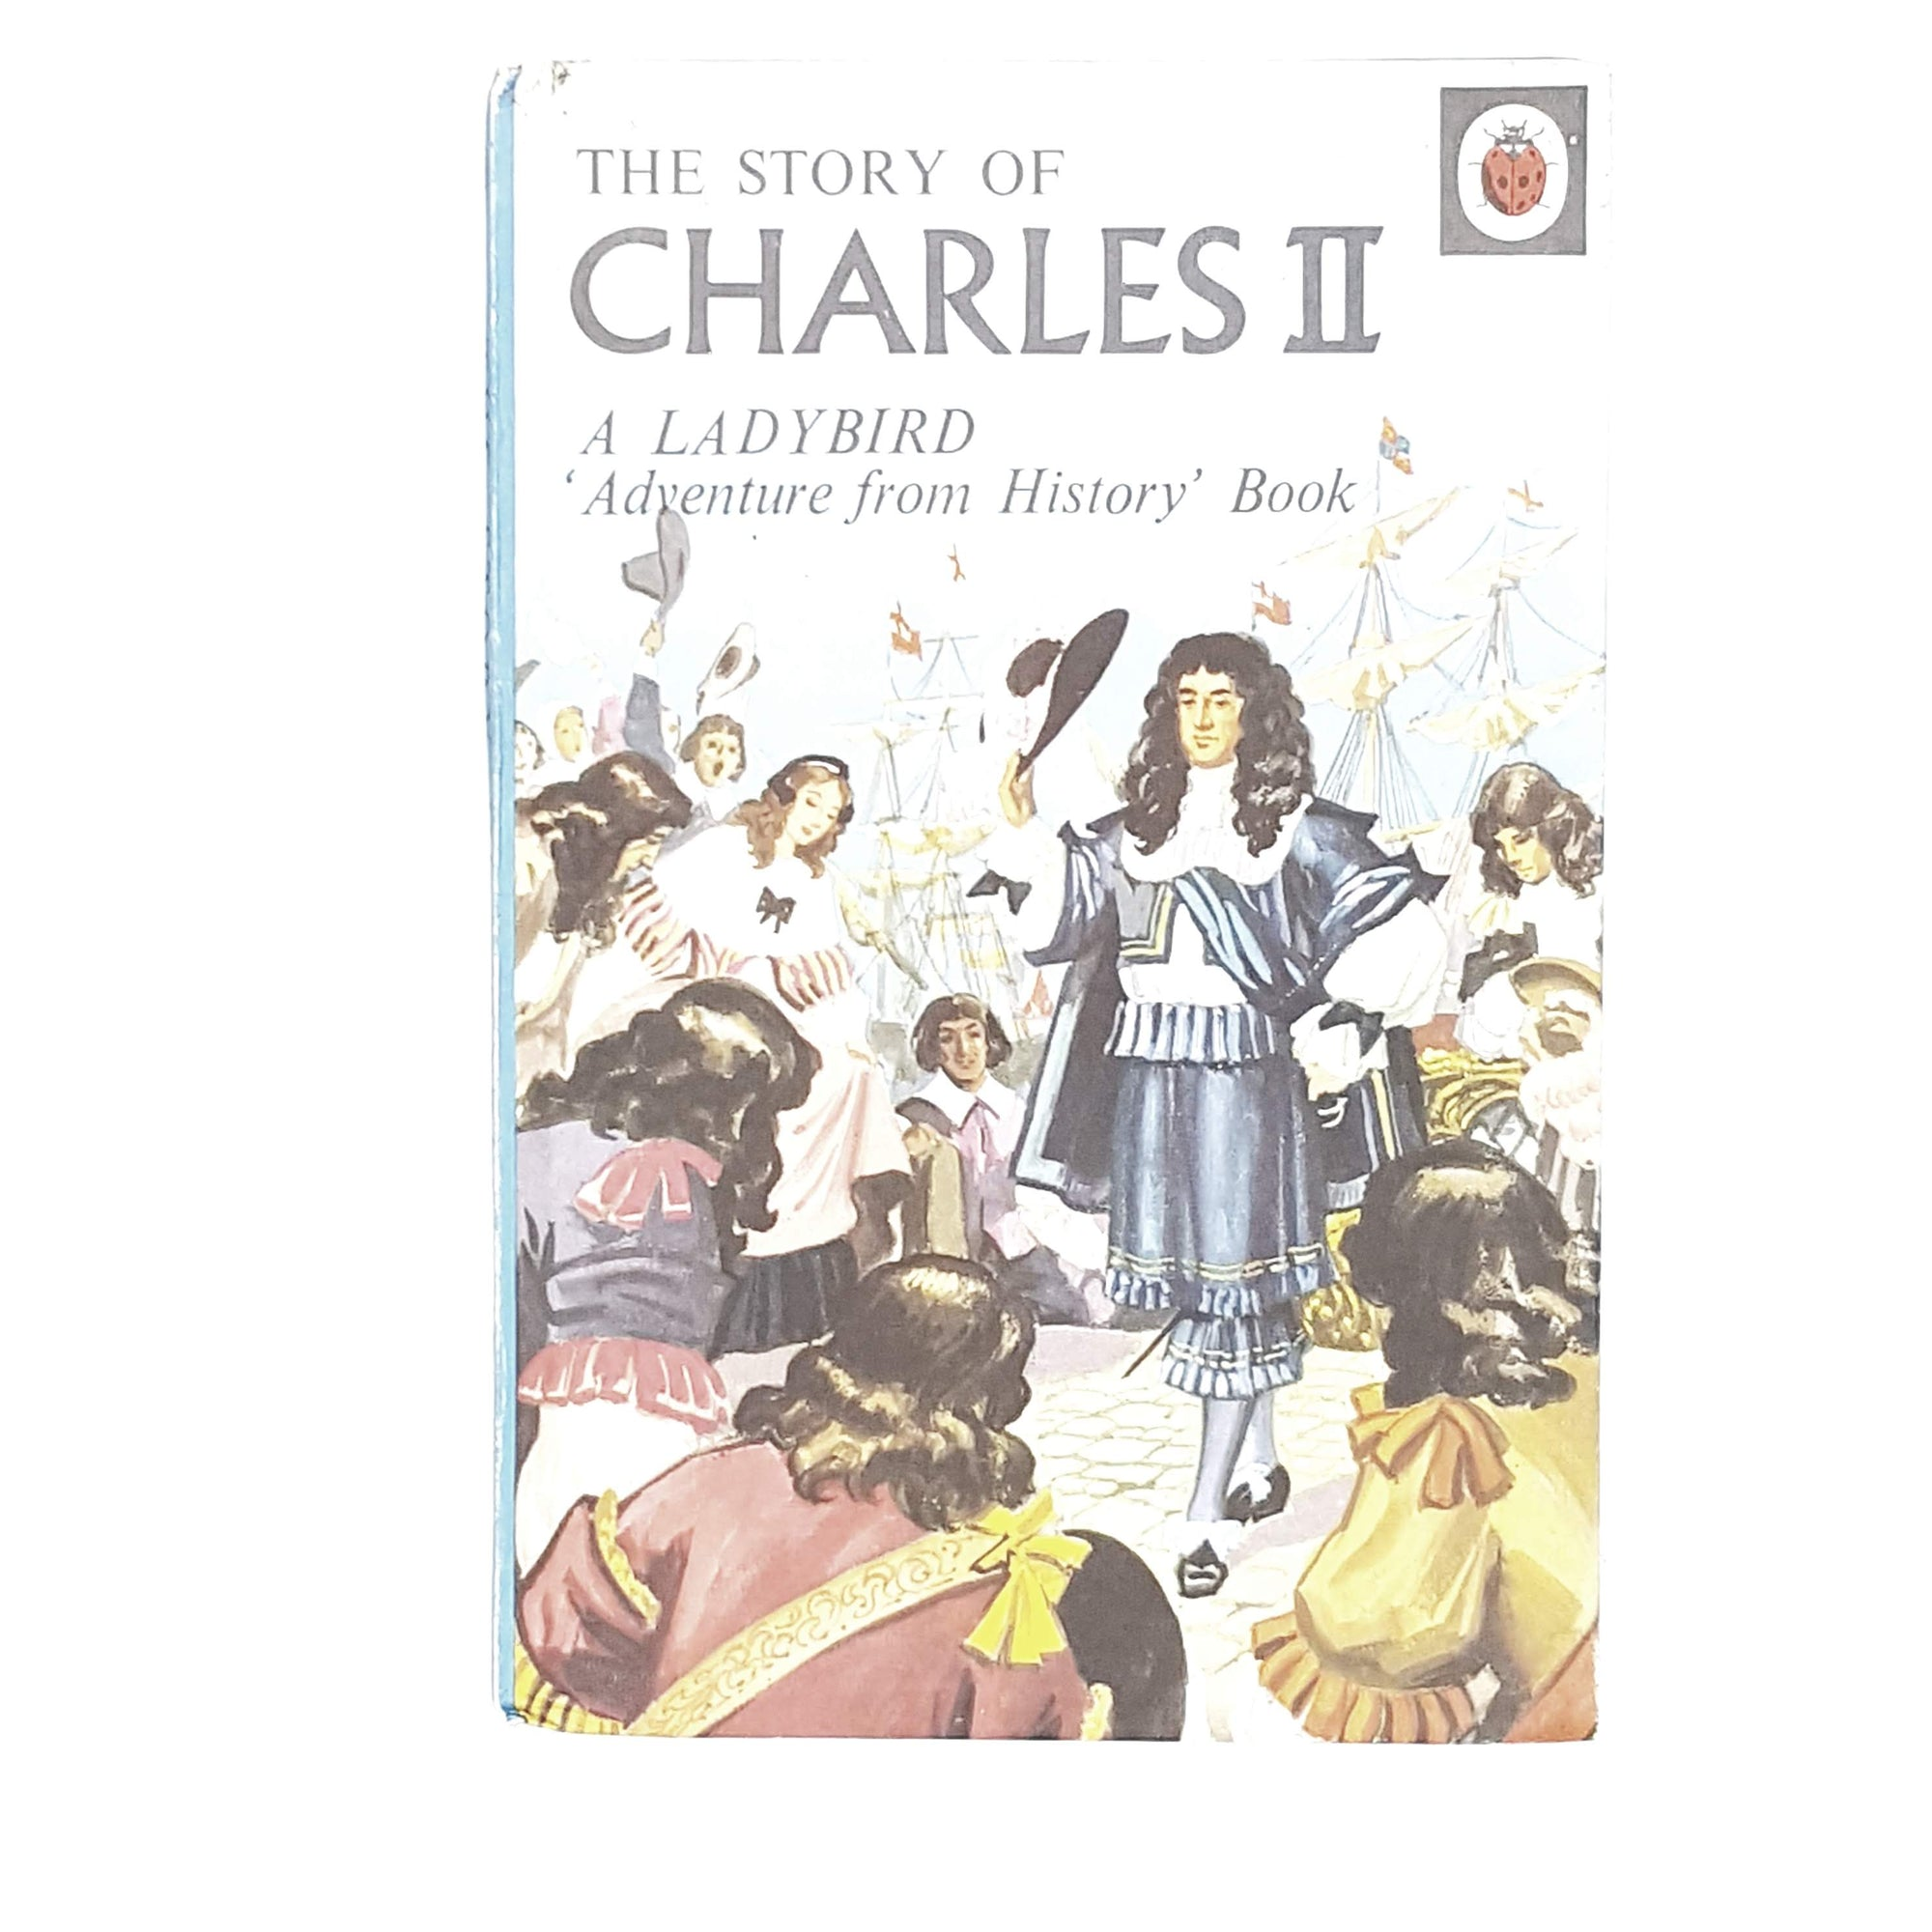 ladybird-history-the-story-of-charles-ii-1960-vintage-kindergarten-books-online-bookstore-country-house-library